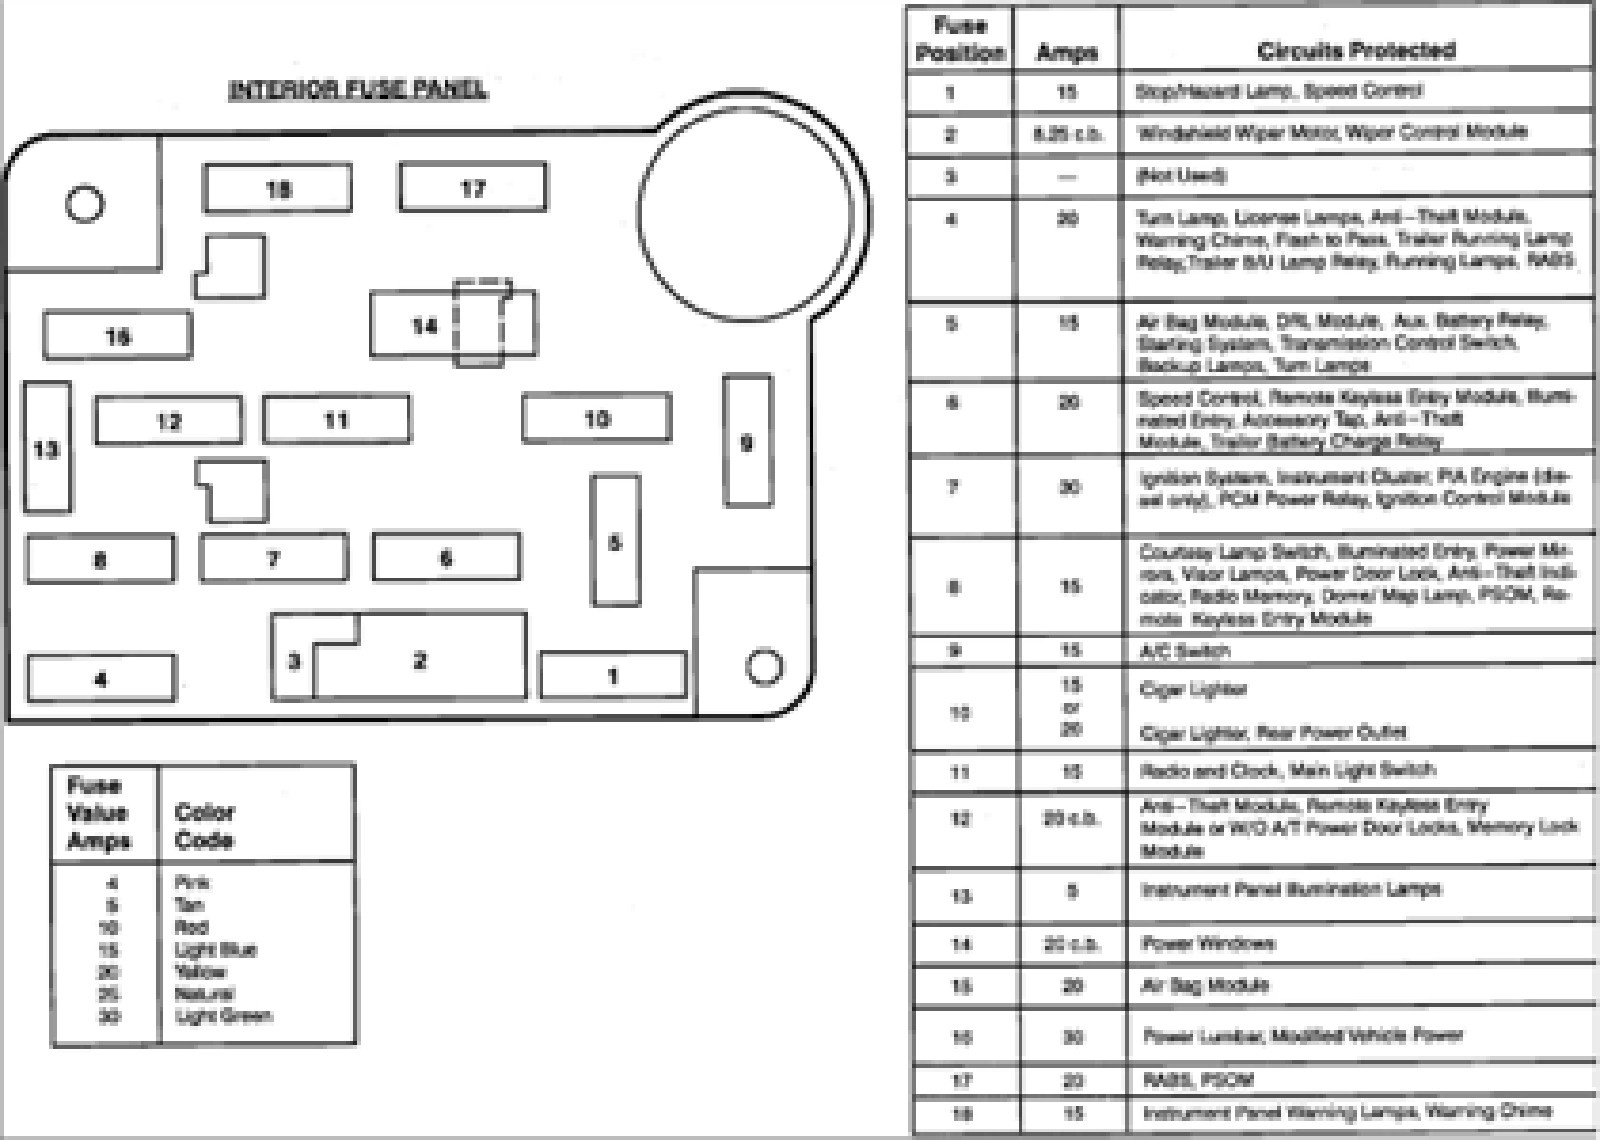 1993 Ford E150 Fuse Box Wiring Diagram Schemes Mitsubishi E 150 Questions For A Econoline Van Exhaust Manifold